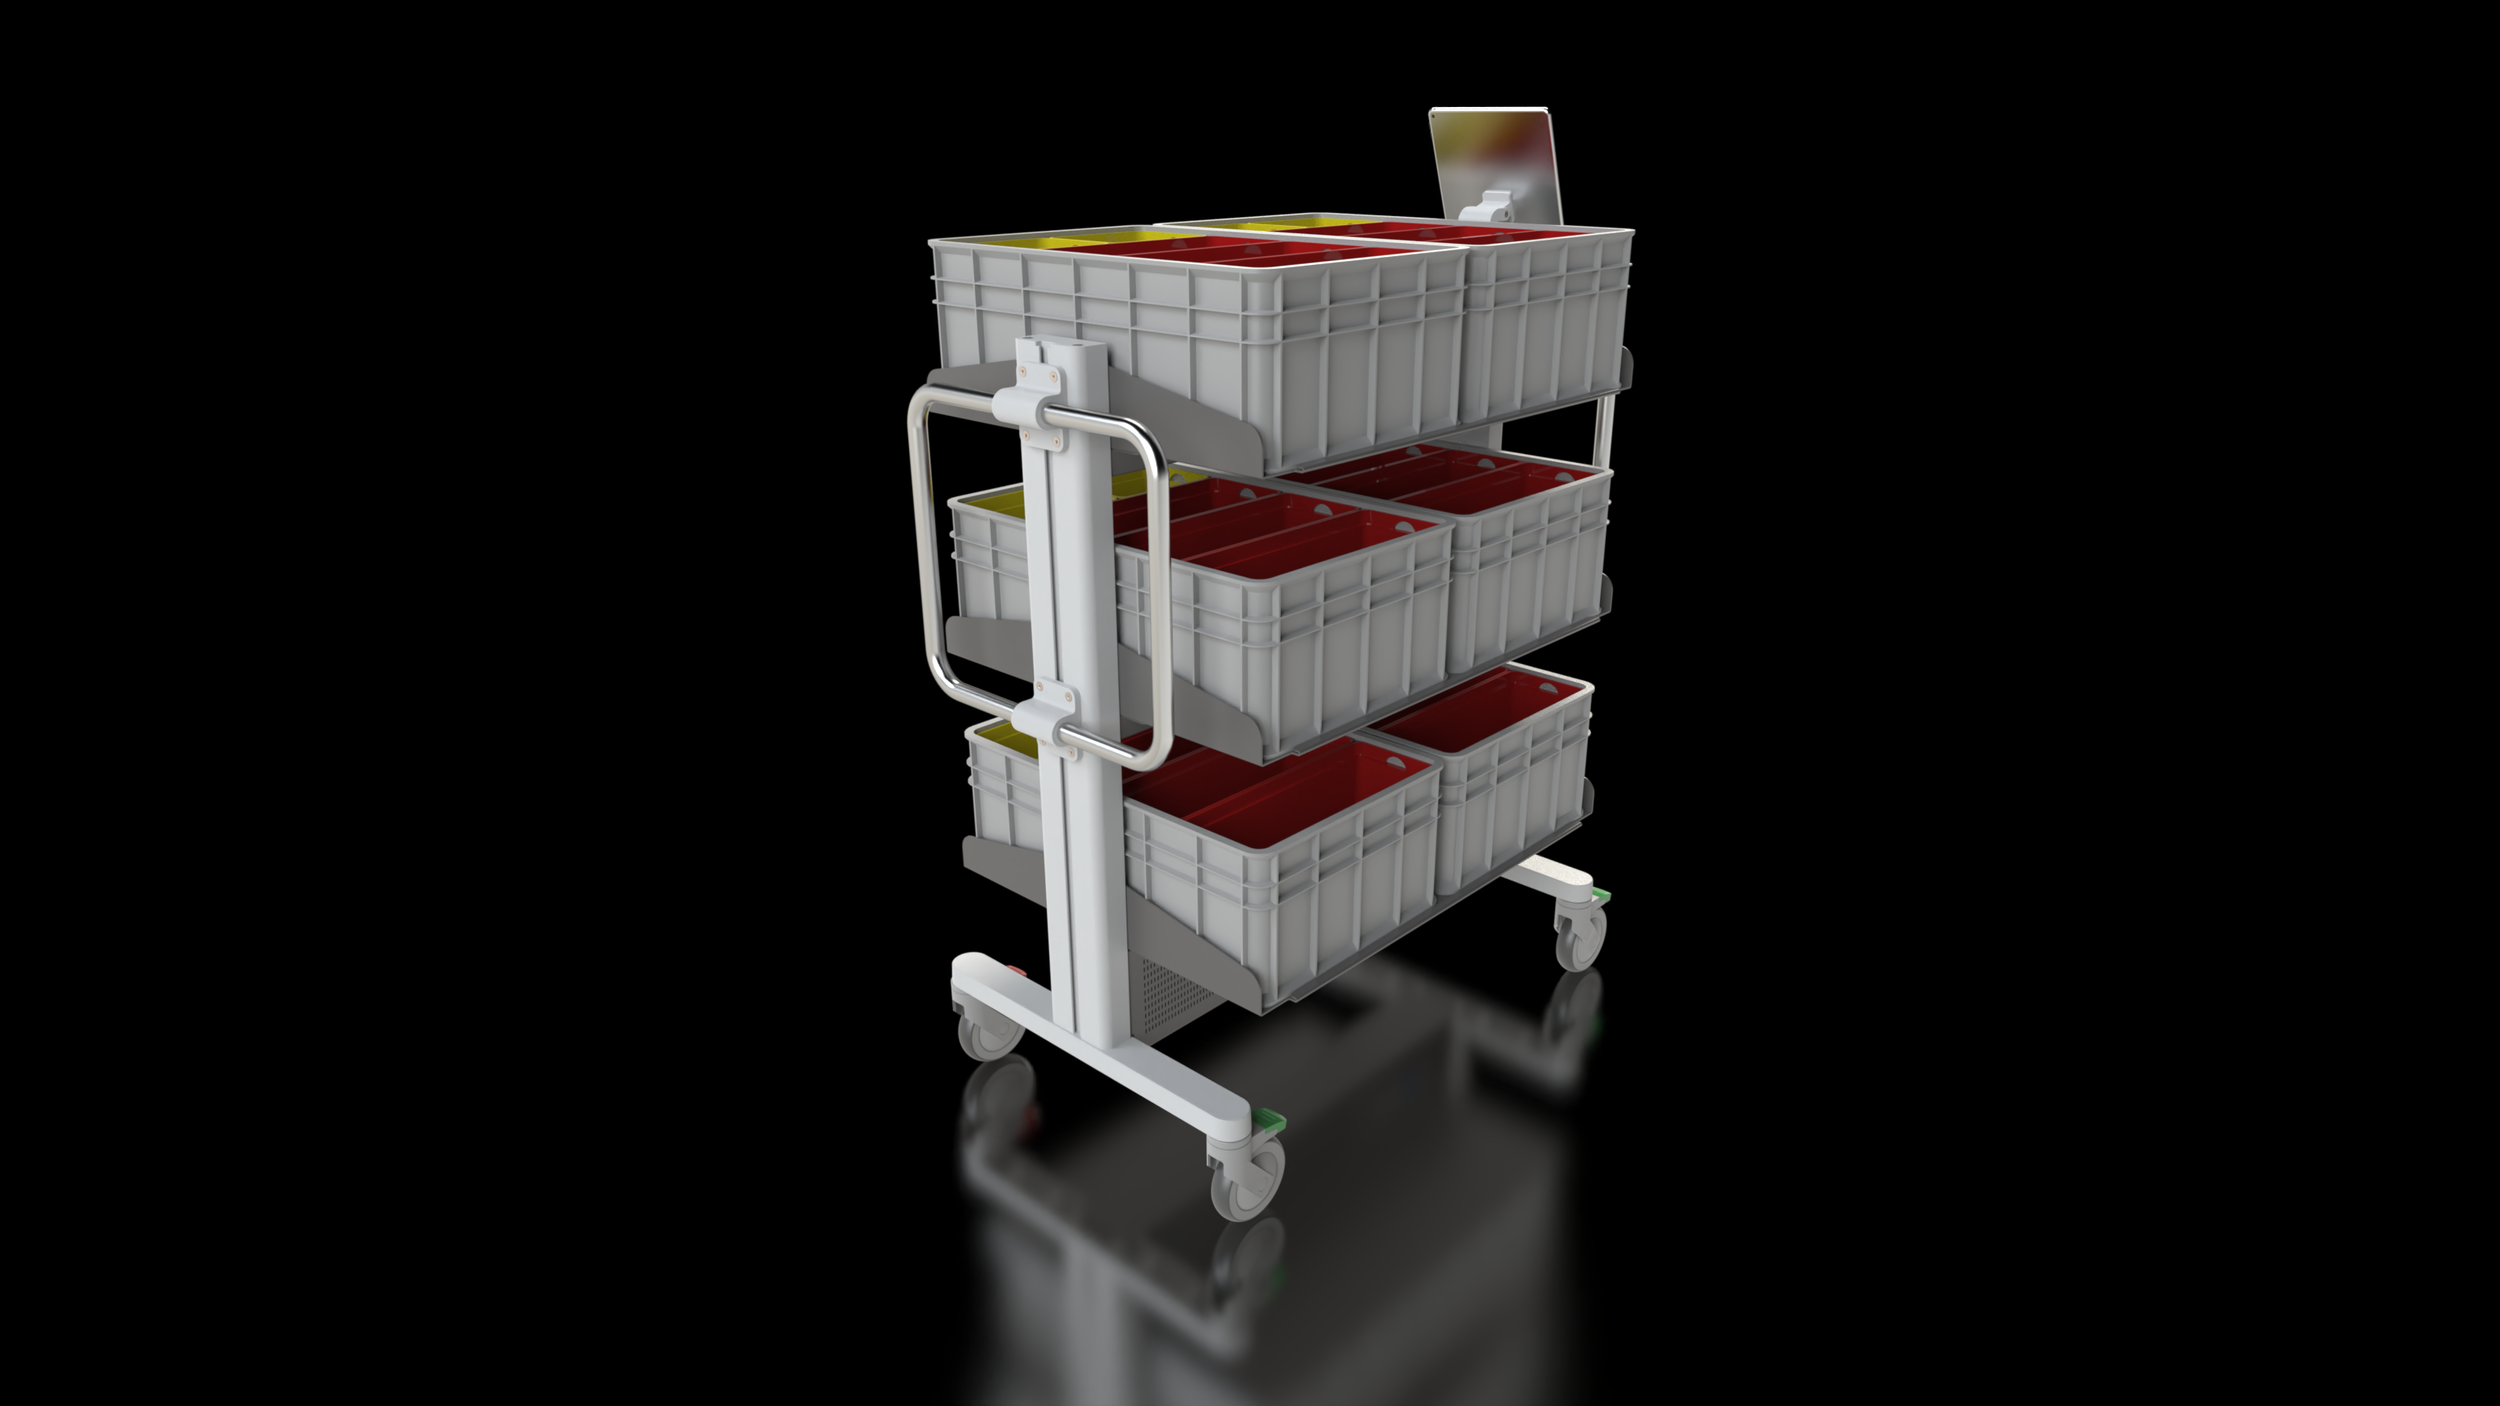 grocery-fulfillment-order-picking-cart